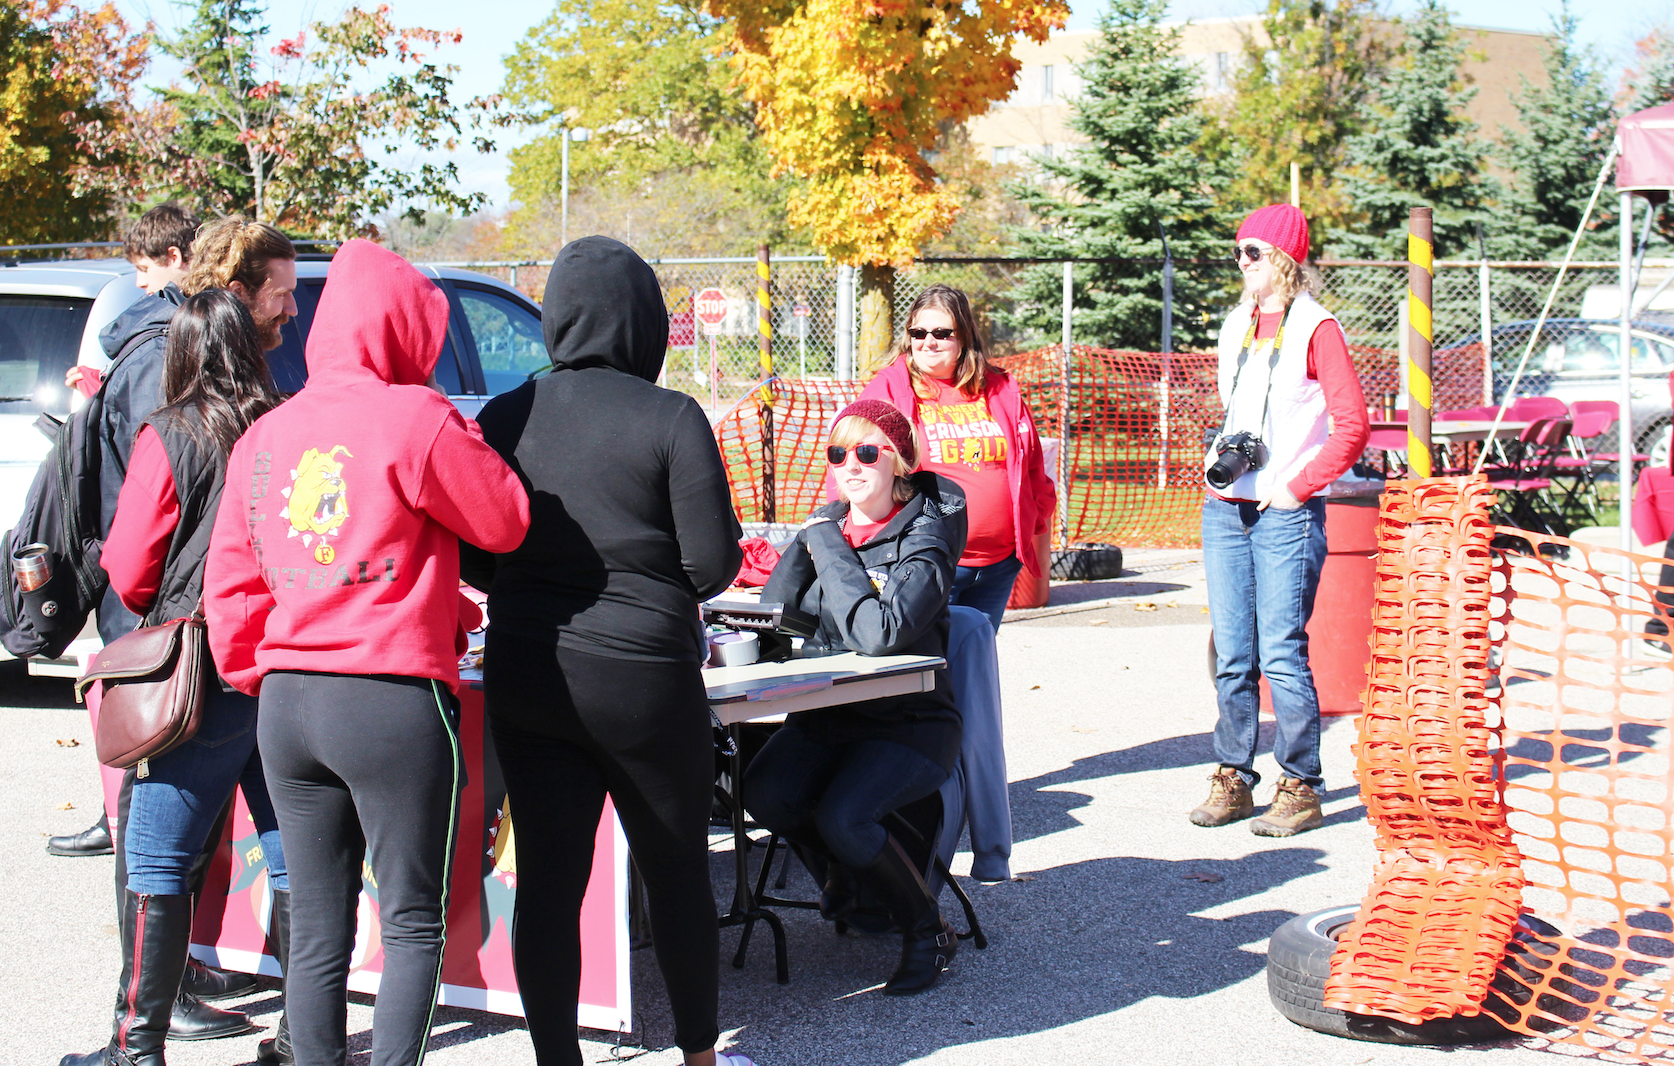 Ferris' office of housing and residence life, in collaboration with dining services, hosted a resident appreciation tailgate picnic before the Ferris State vs. Lake Erie football game. Residents and meal plan holders were able to bring their IDs to Top Taggert field and partake in free food and a long sleeve t-shirt giveaway.